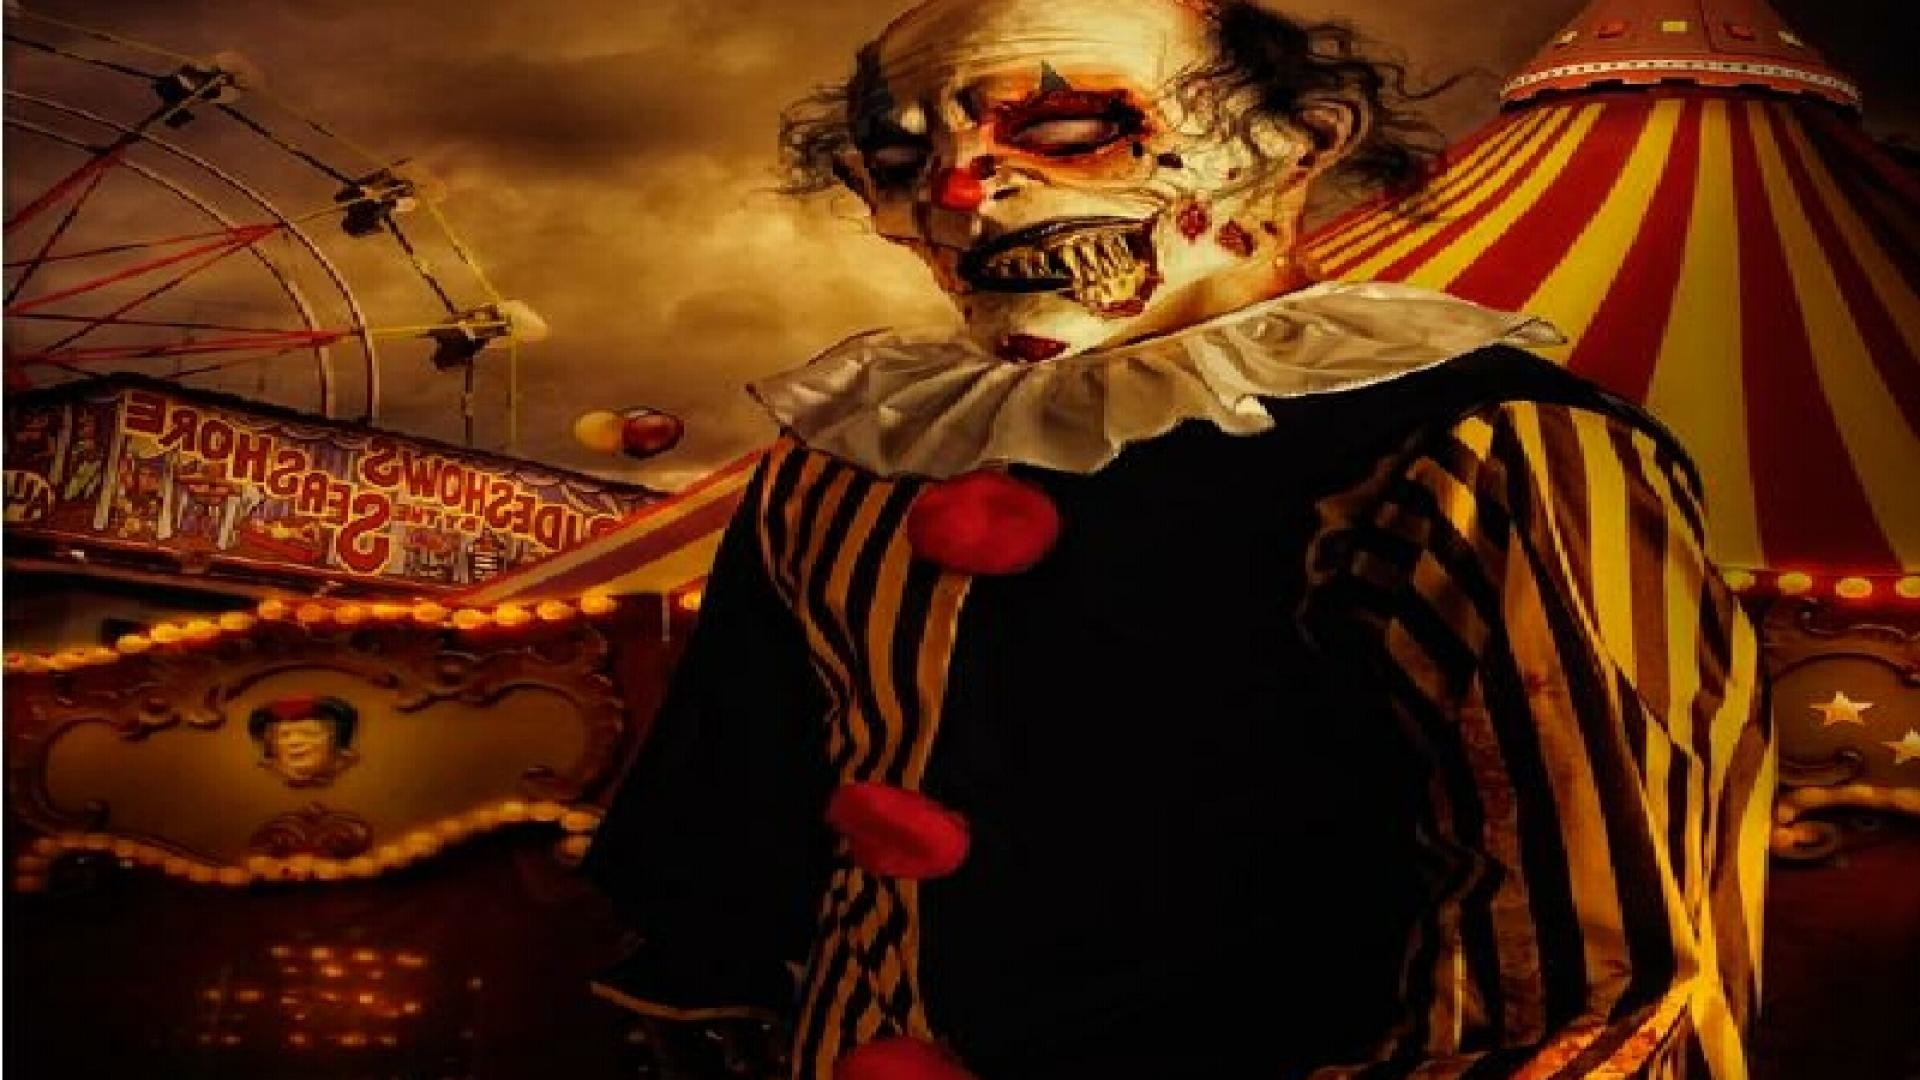 1920x1080 ... Killer Clown Wallpapers (36 Wallpapers) – Adorable Wallpapers Scary ...